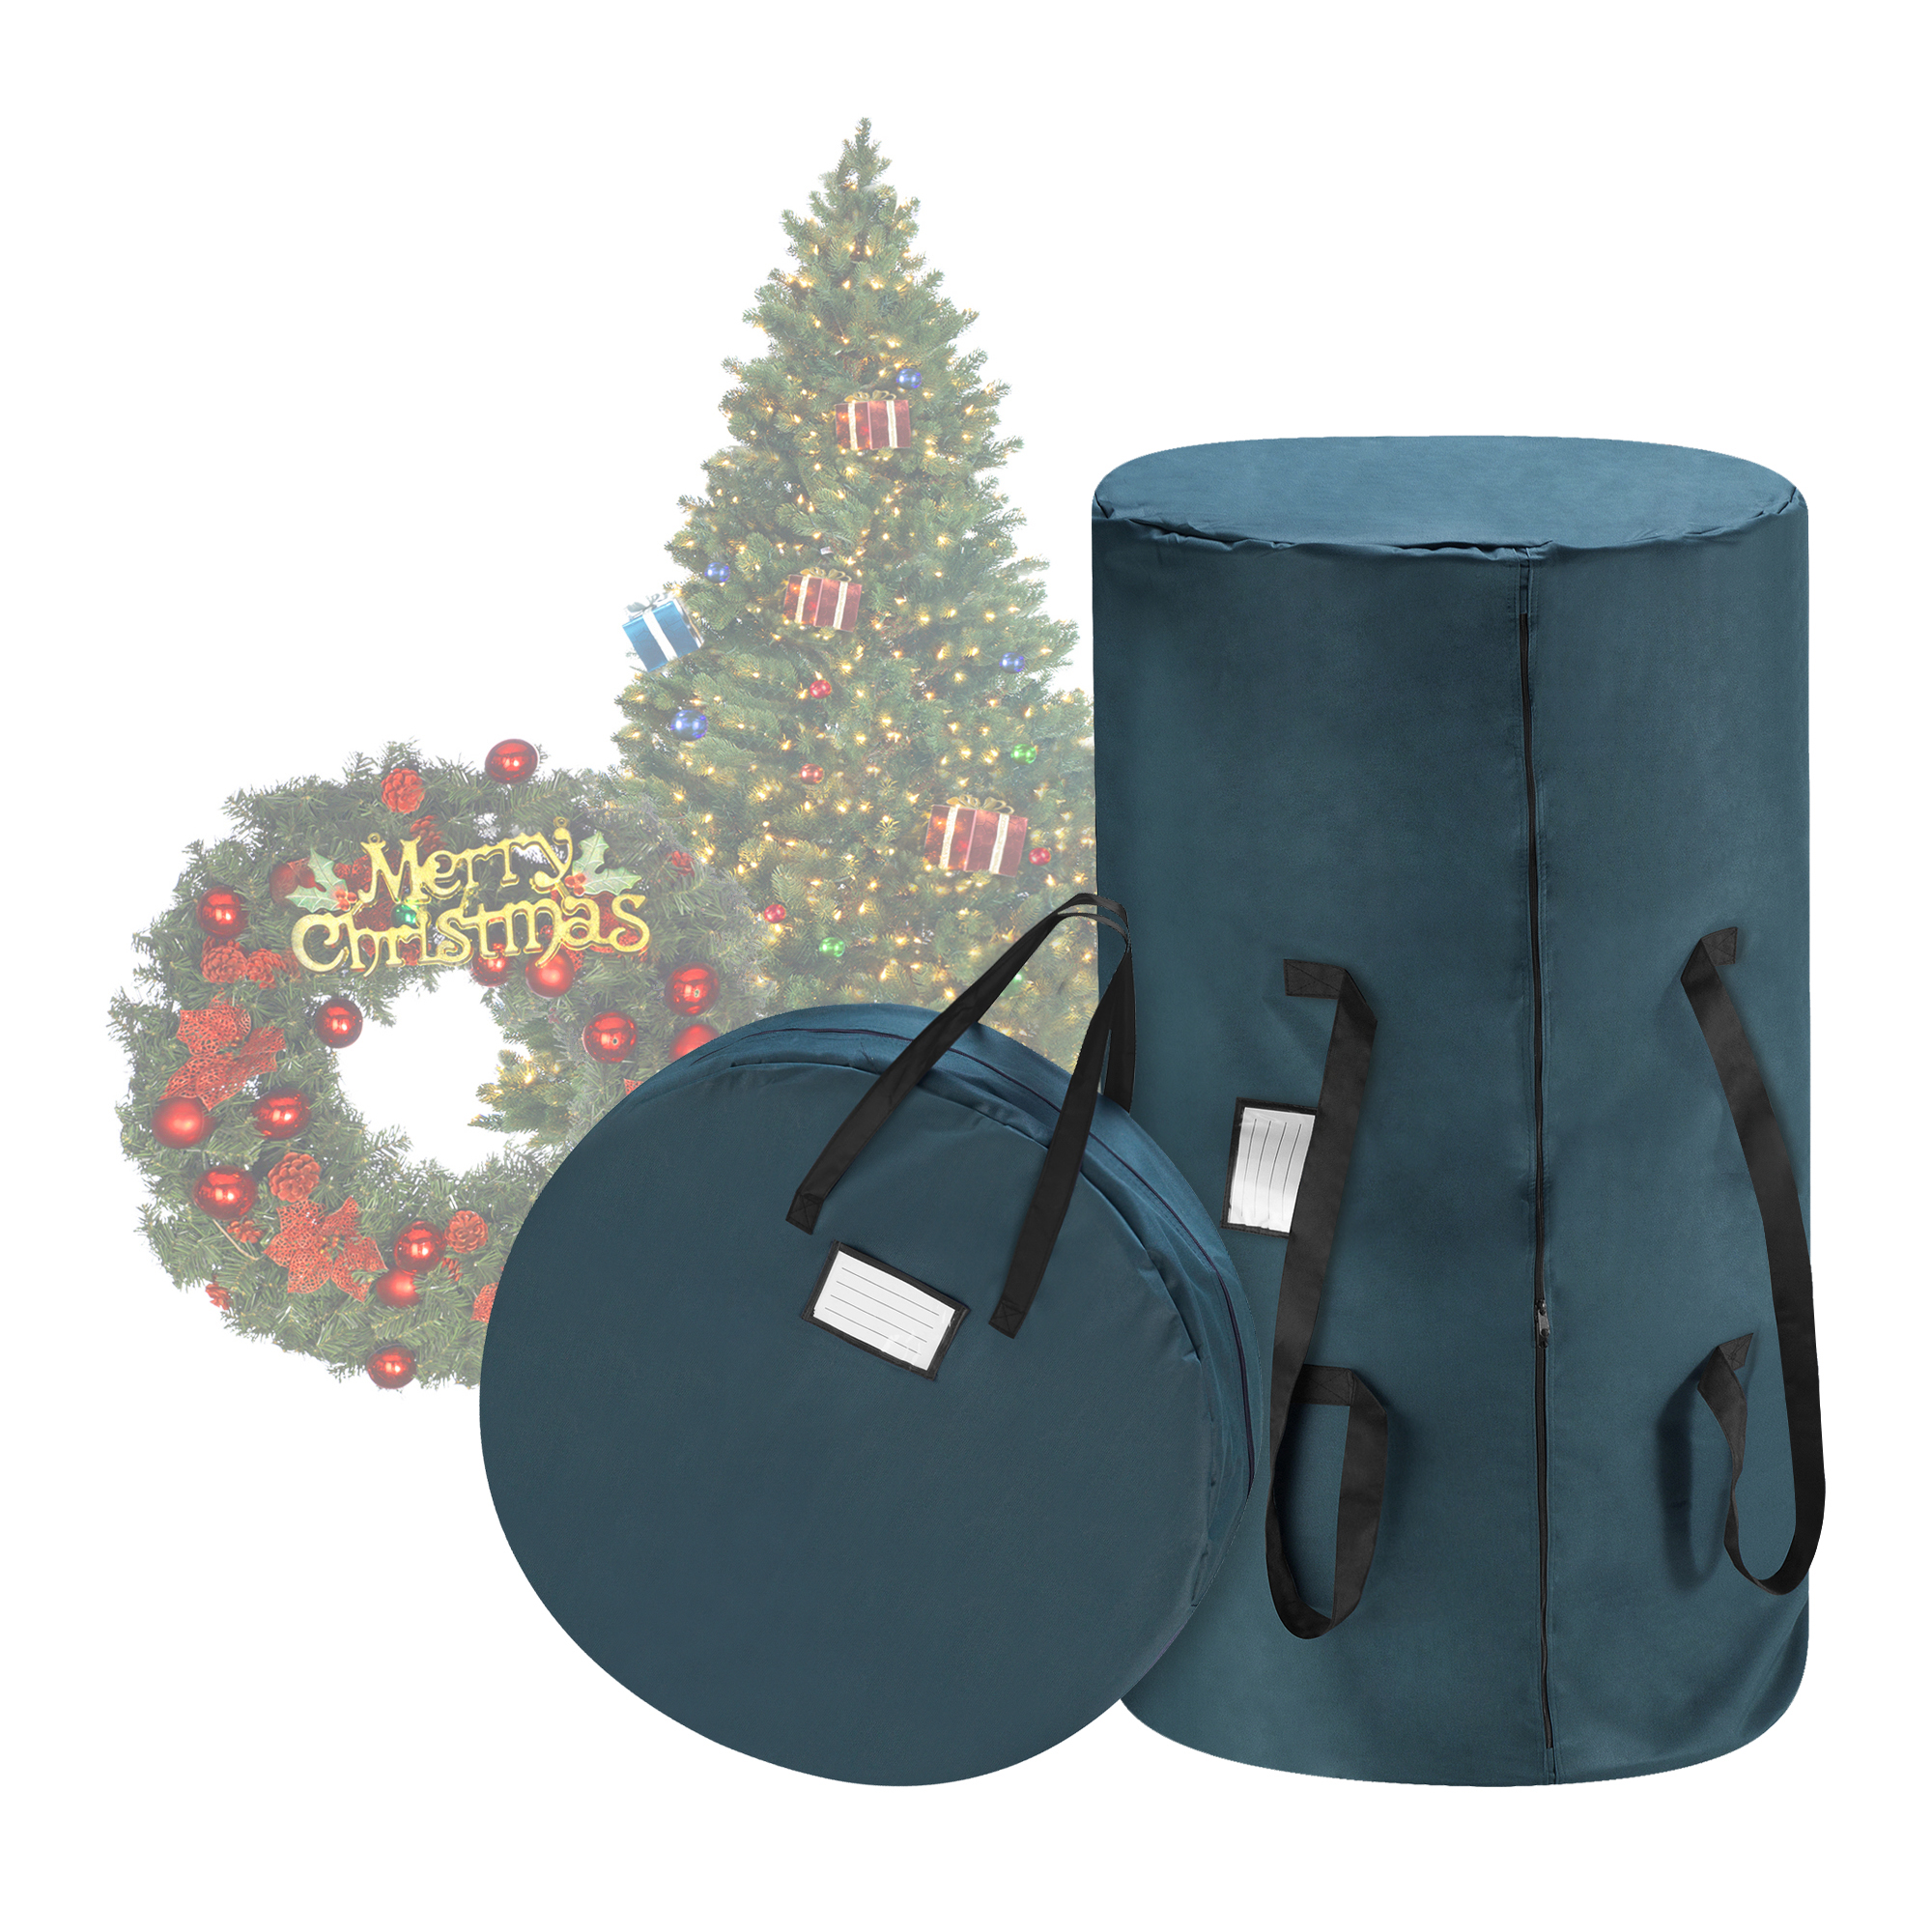 50x20x15 Polyester Artificial Tree Storage Bag with Dual Zippers and Sturdy Handles Green Lulu Home Christmas Tree Storage Bag Fits Up to 7 Ft Disassembled Xmas Trees